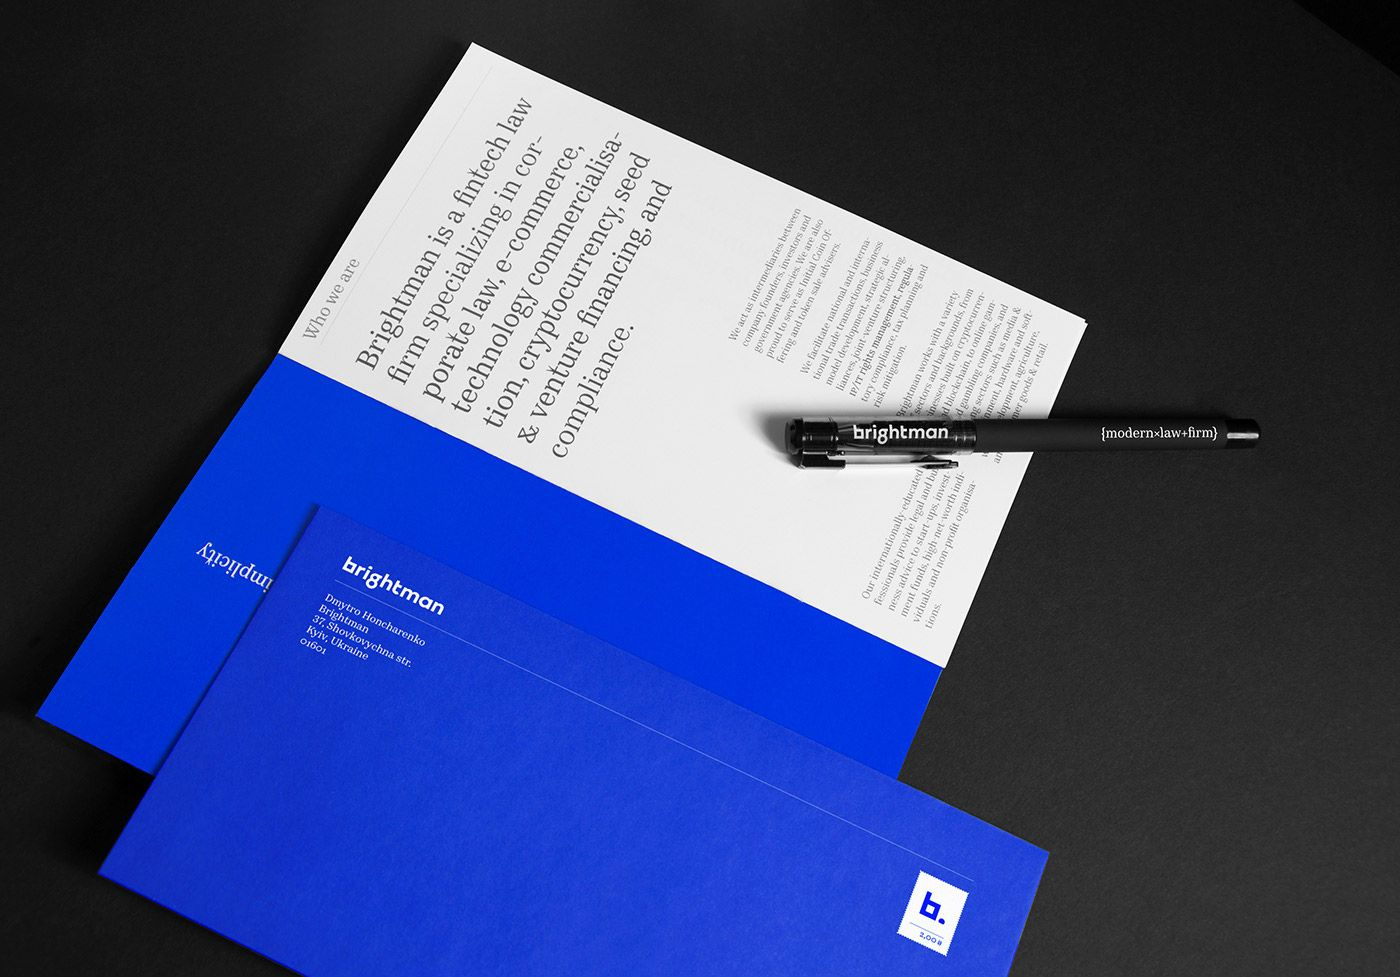 Brightman Branding | Pinterest | Consulting firms, Cd design and ...